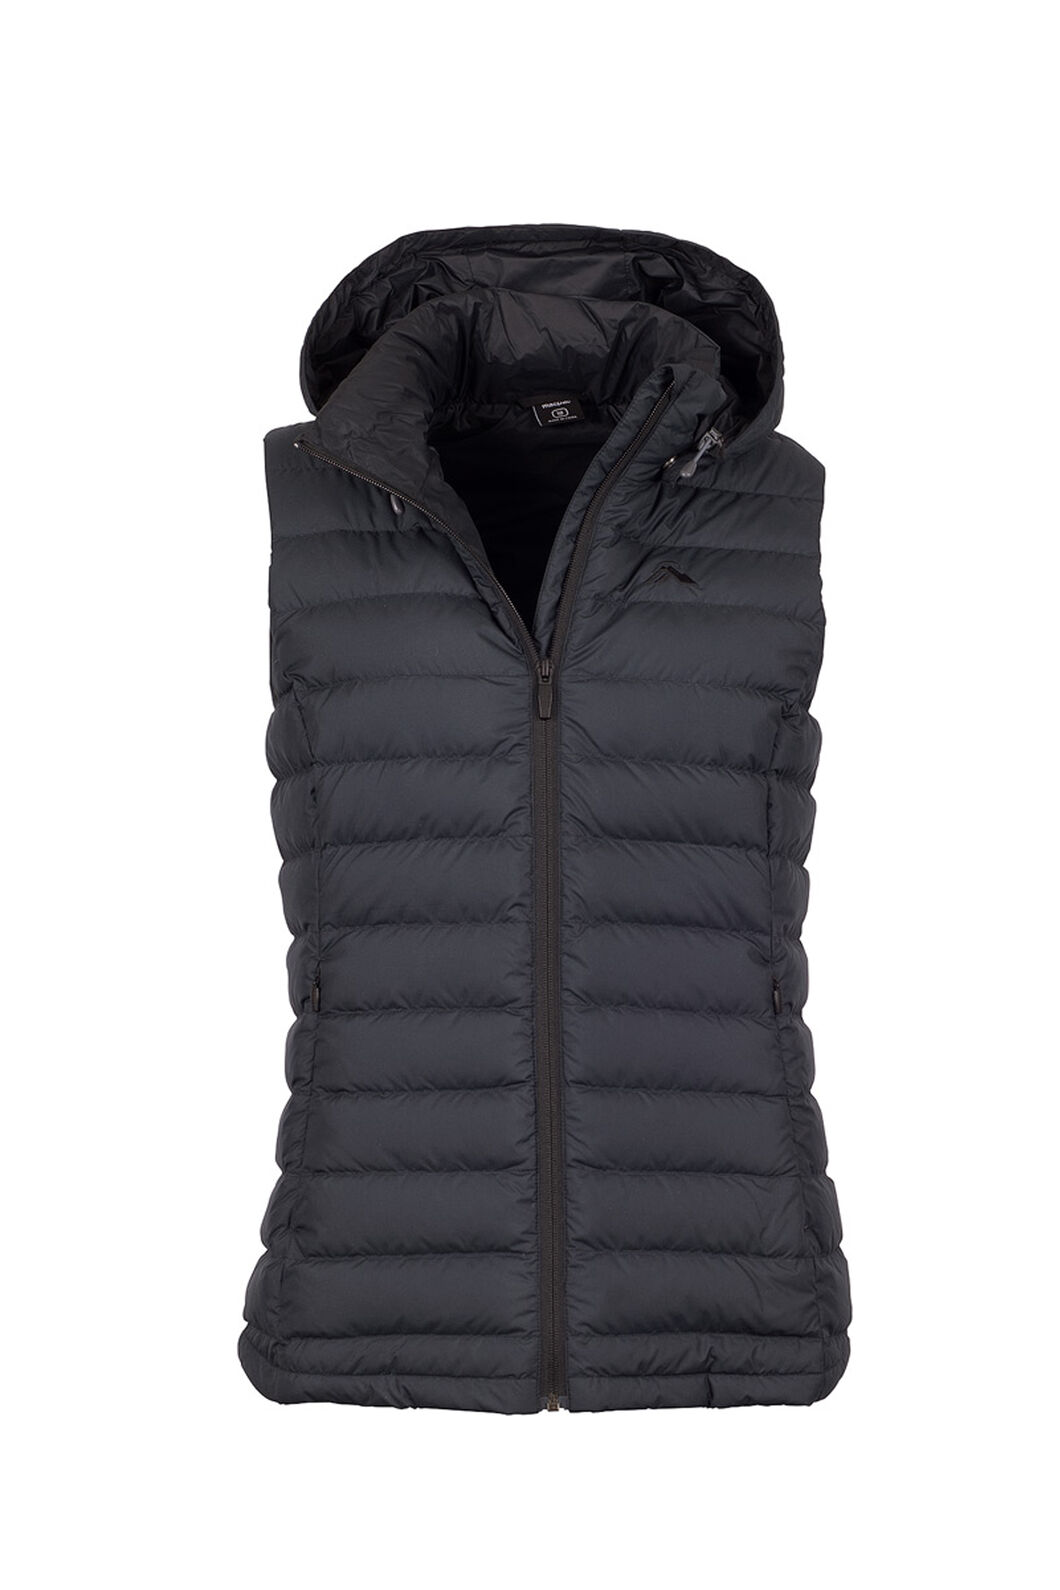 Macpac Zodiac Hooded Down Vest — Women's, Black, hi-res